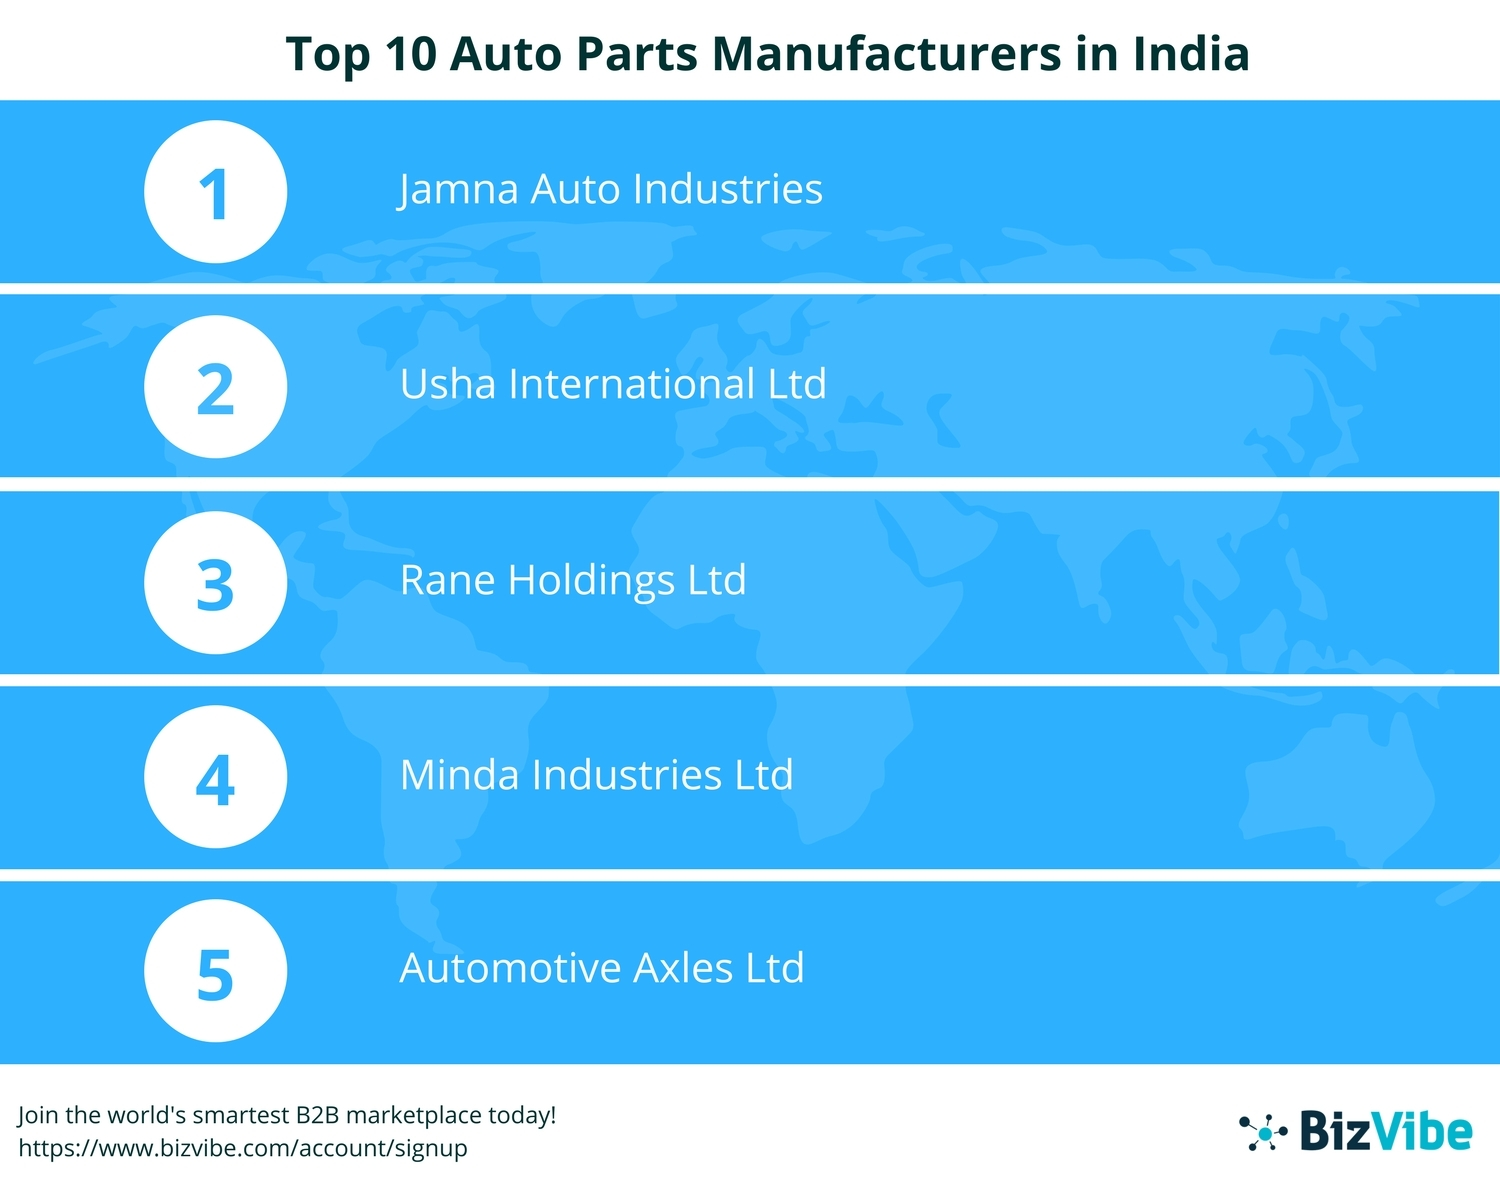 Bizvibe Announces Their List Of Top 10 Auto Parts Manufacturers In